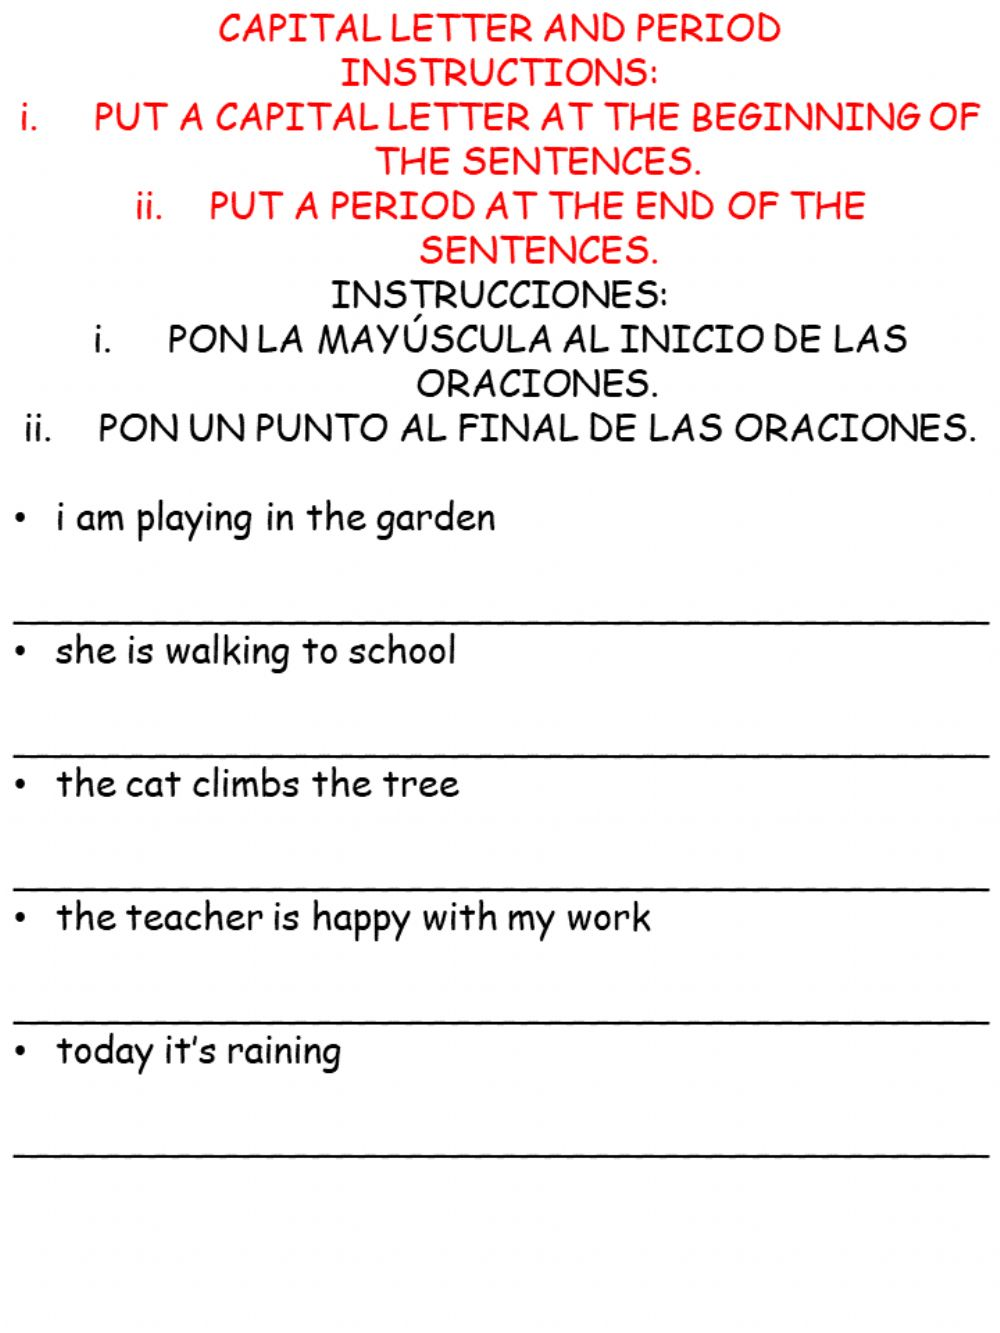 hight resolution of Capital letter and period worksheet